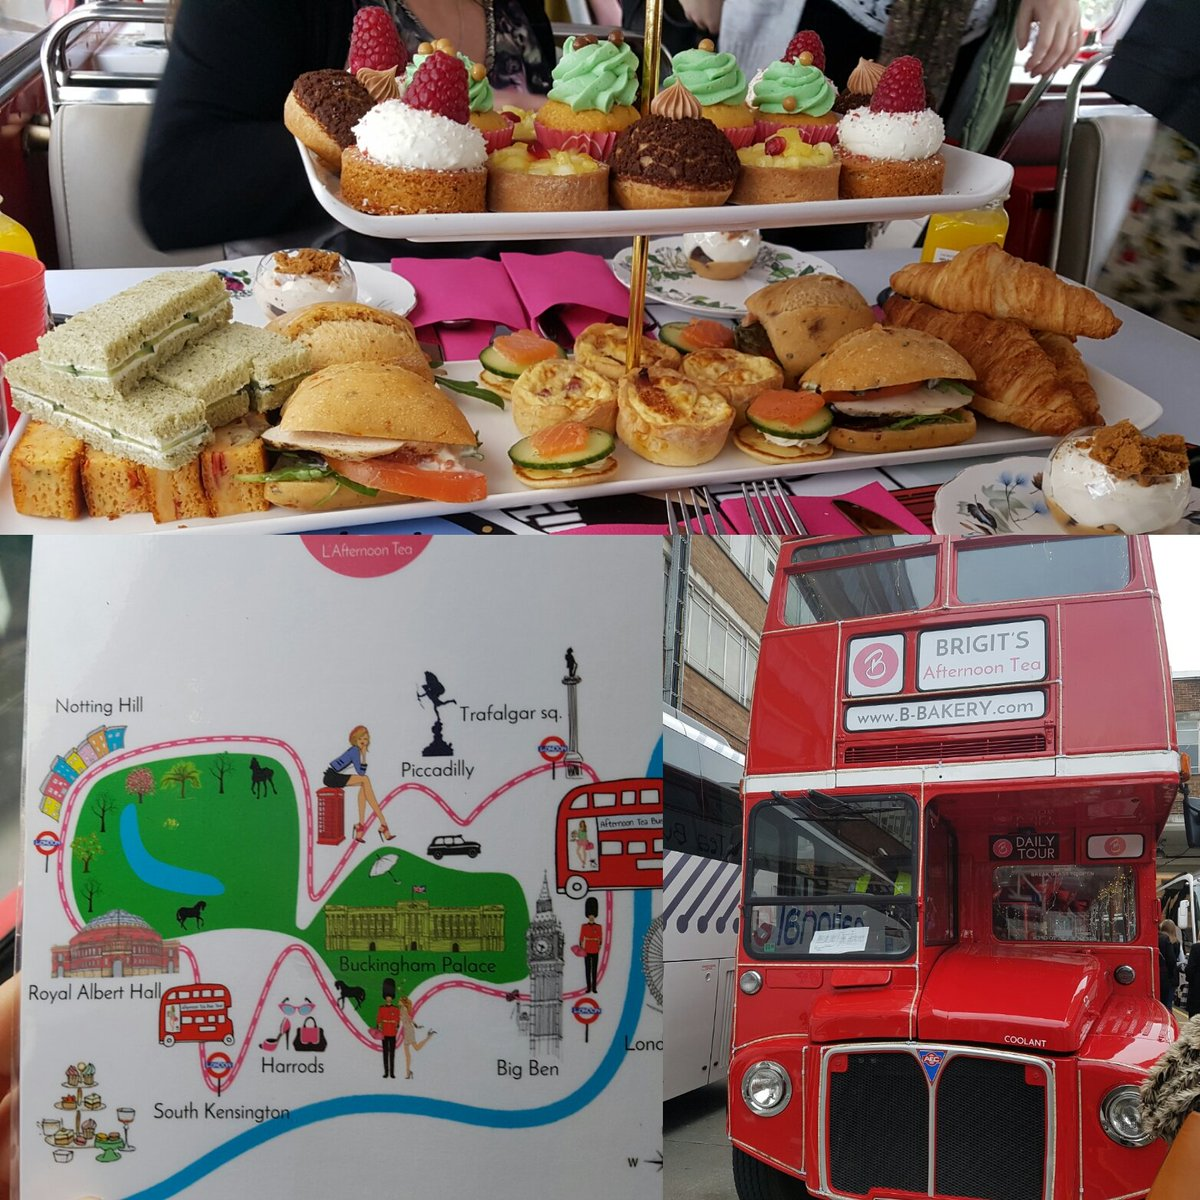 Amazing afternoon tea bus tour from @B8Bakery #London #hendo https://t.co/qDqH64VkBu